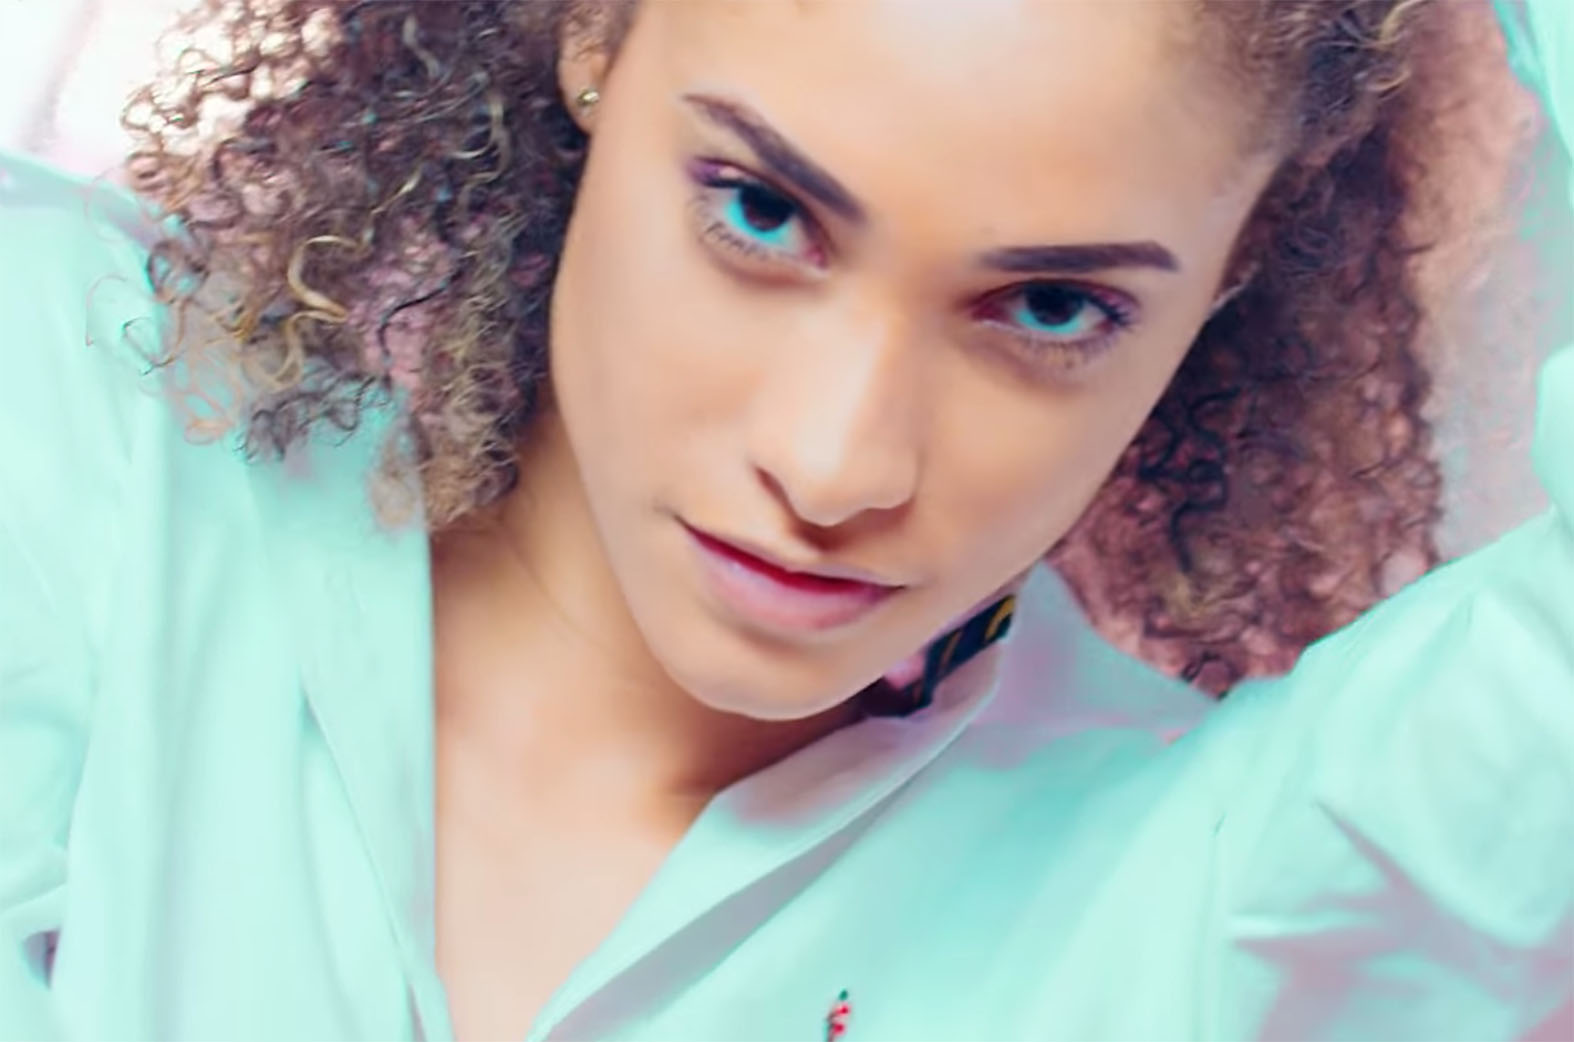 Video Premiere: They Say by Keche